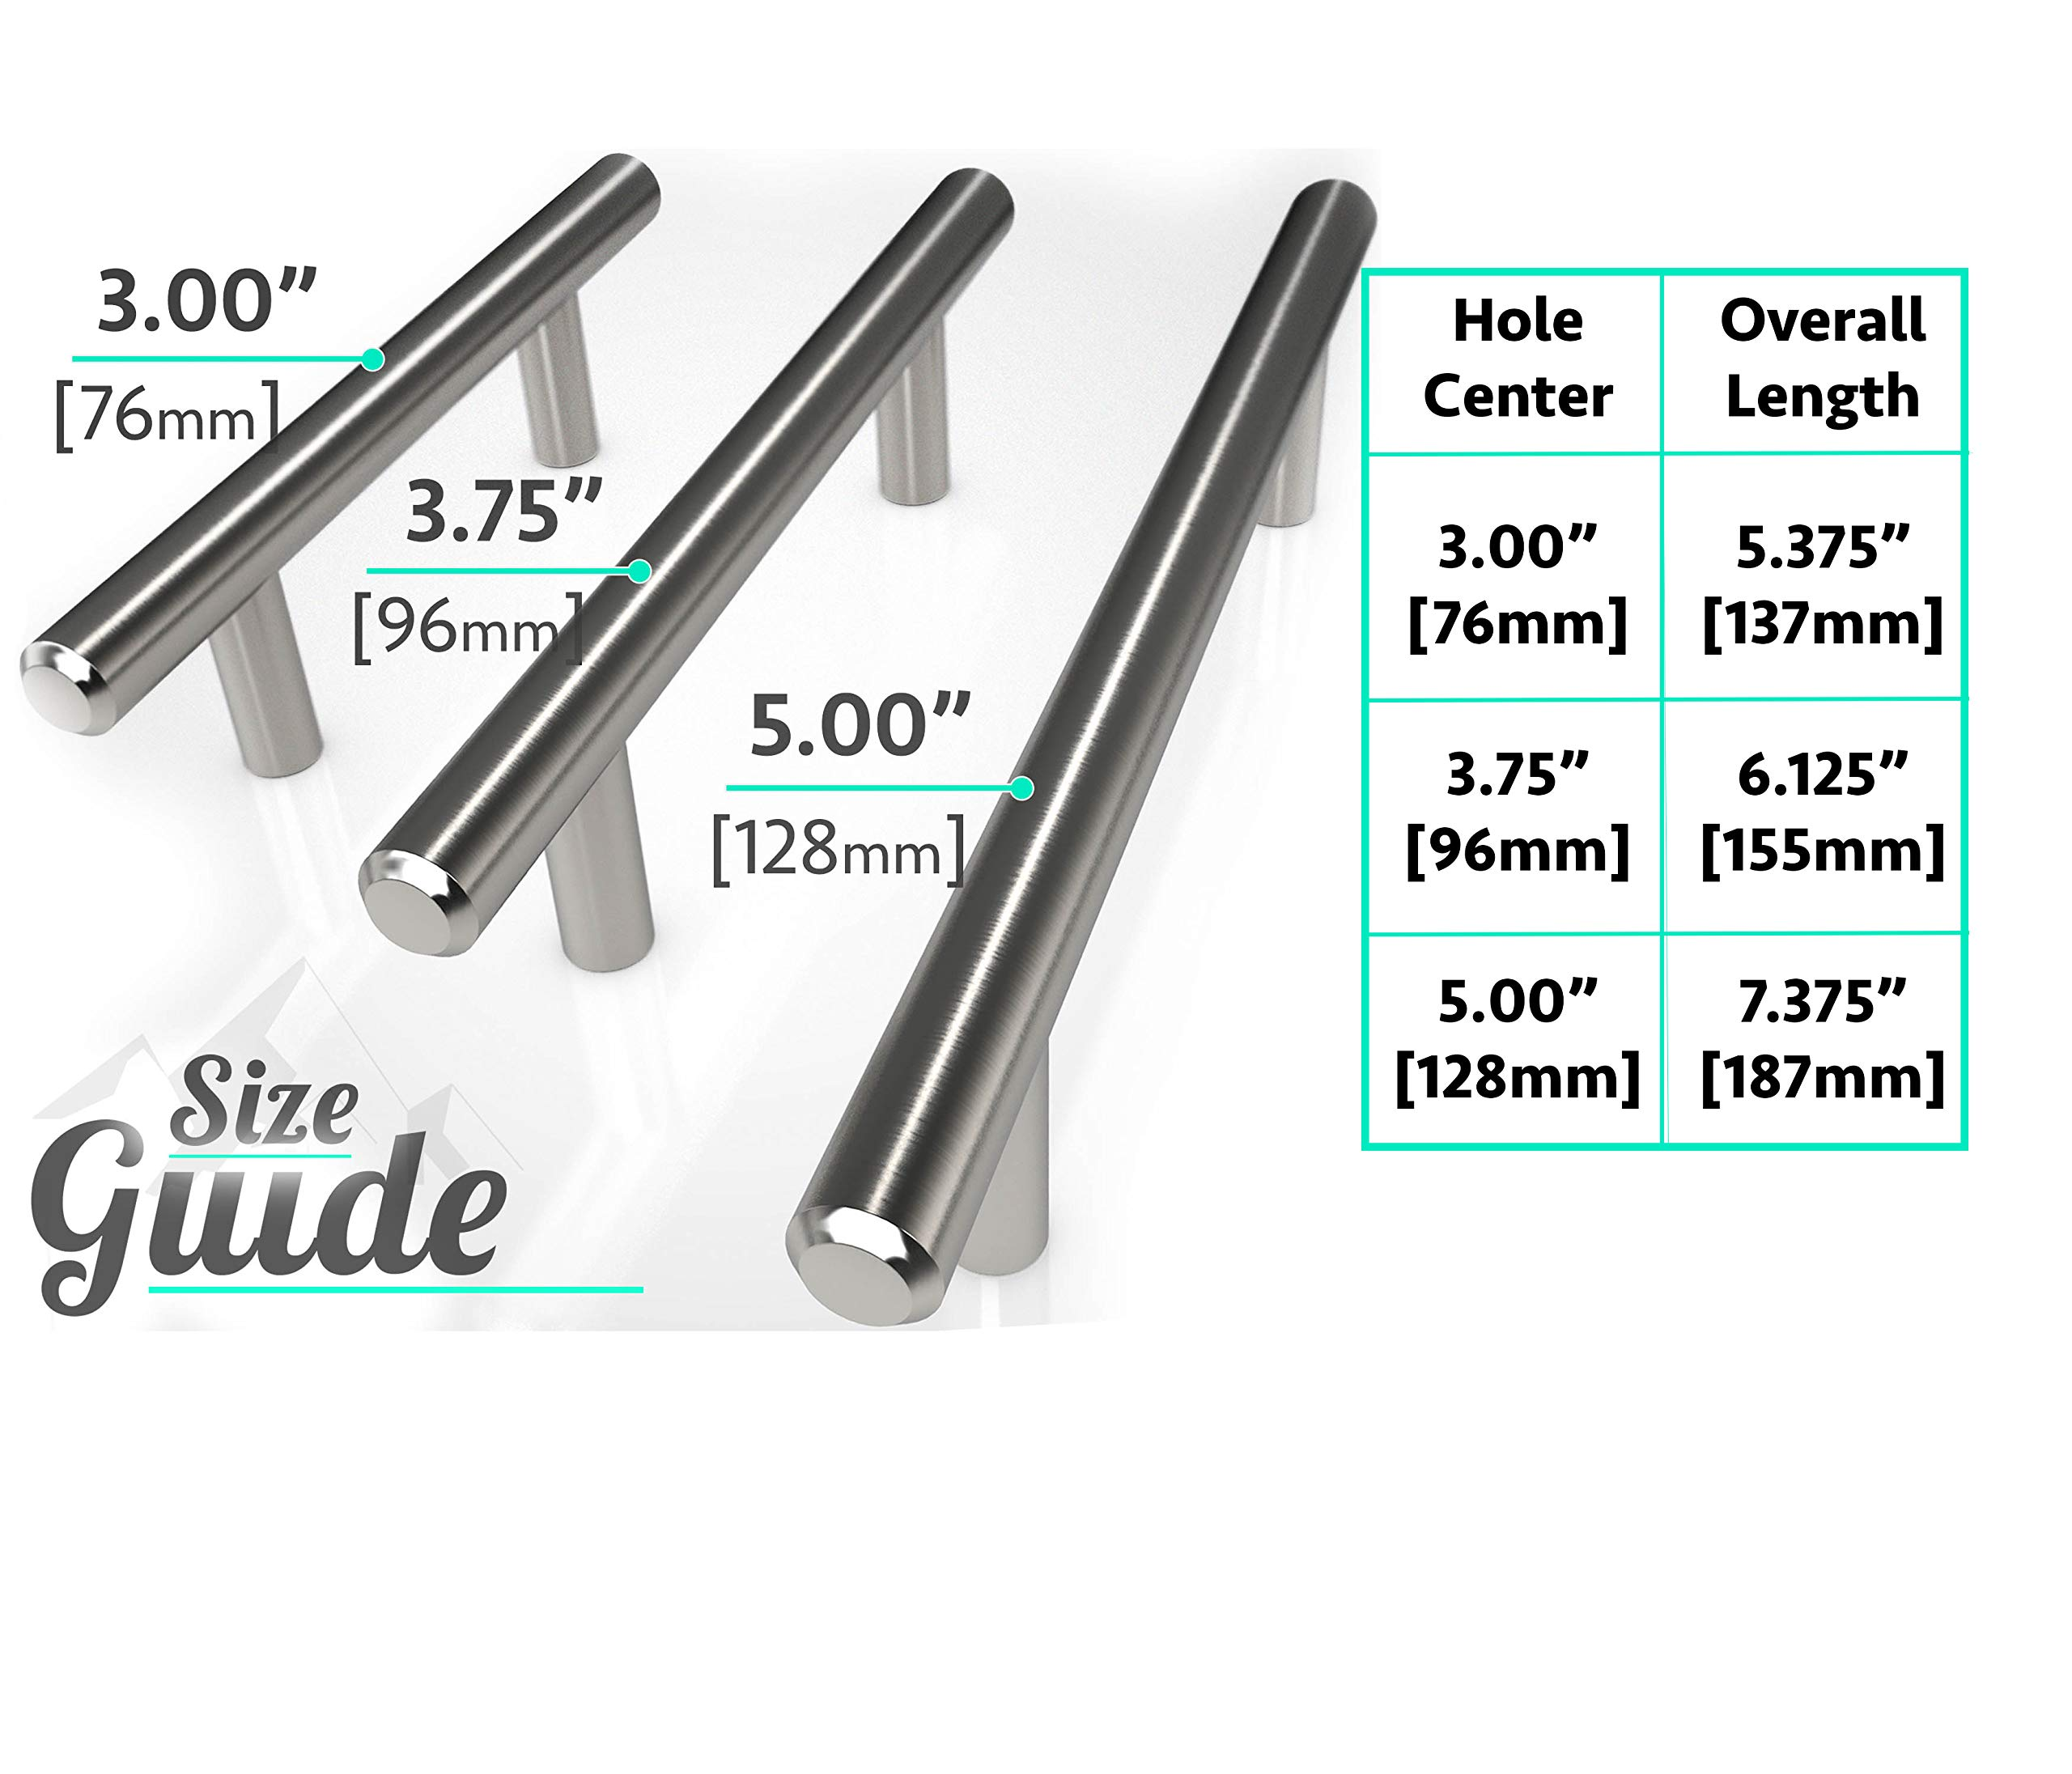 Alpine Hardware | 30Pack ~ 5'' (128mm) Hole Center | Solid Stainless Steel, Bar Handle Pull with A Fine-Brushed Satin Nickel Finish | Kitchen Cabinet Hardware/Dresser Drawer Handles